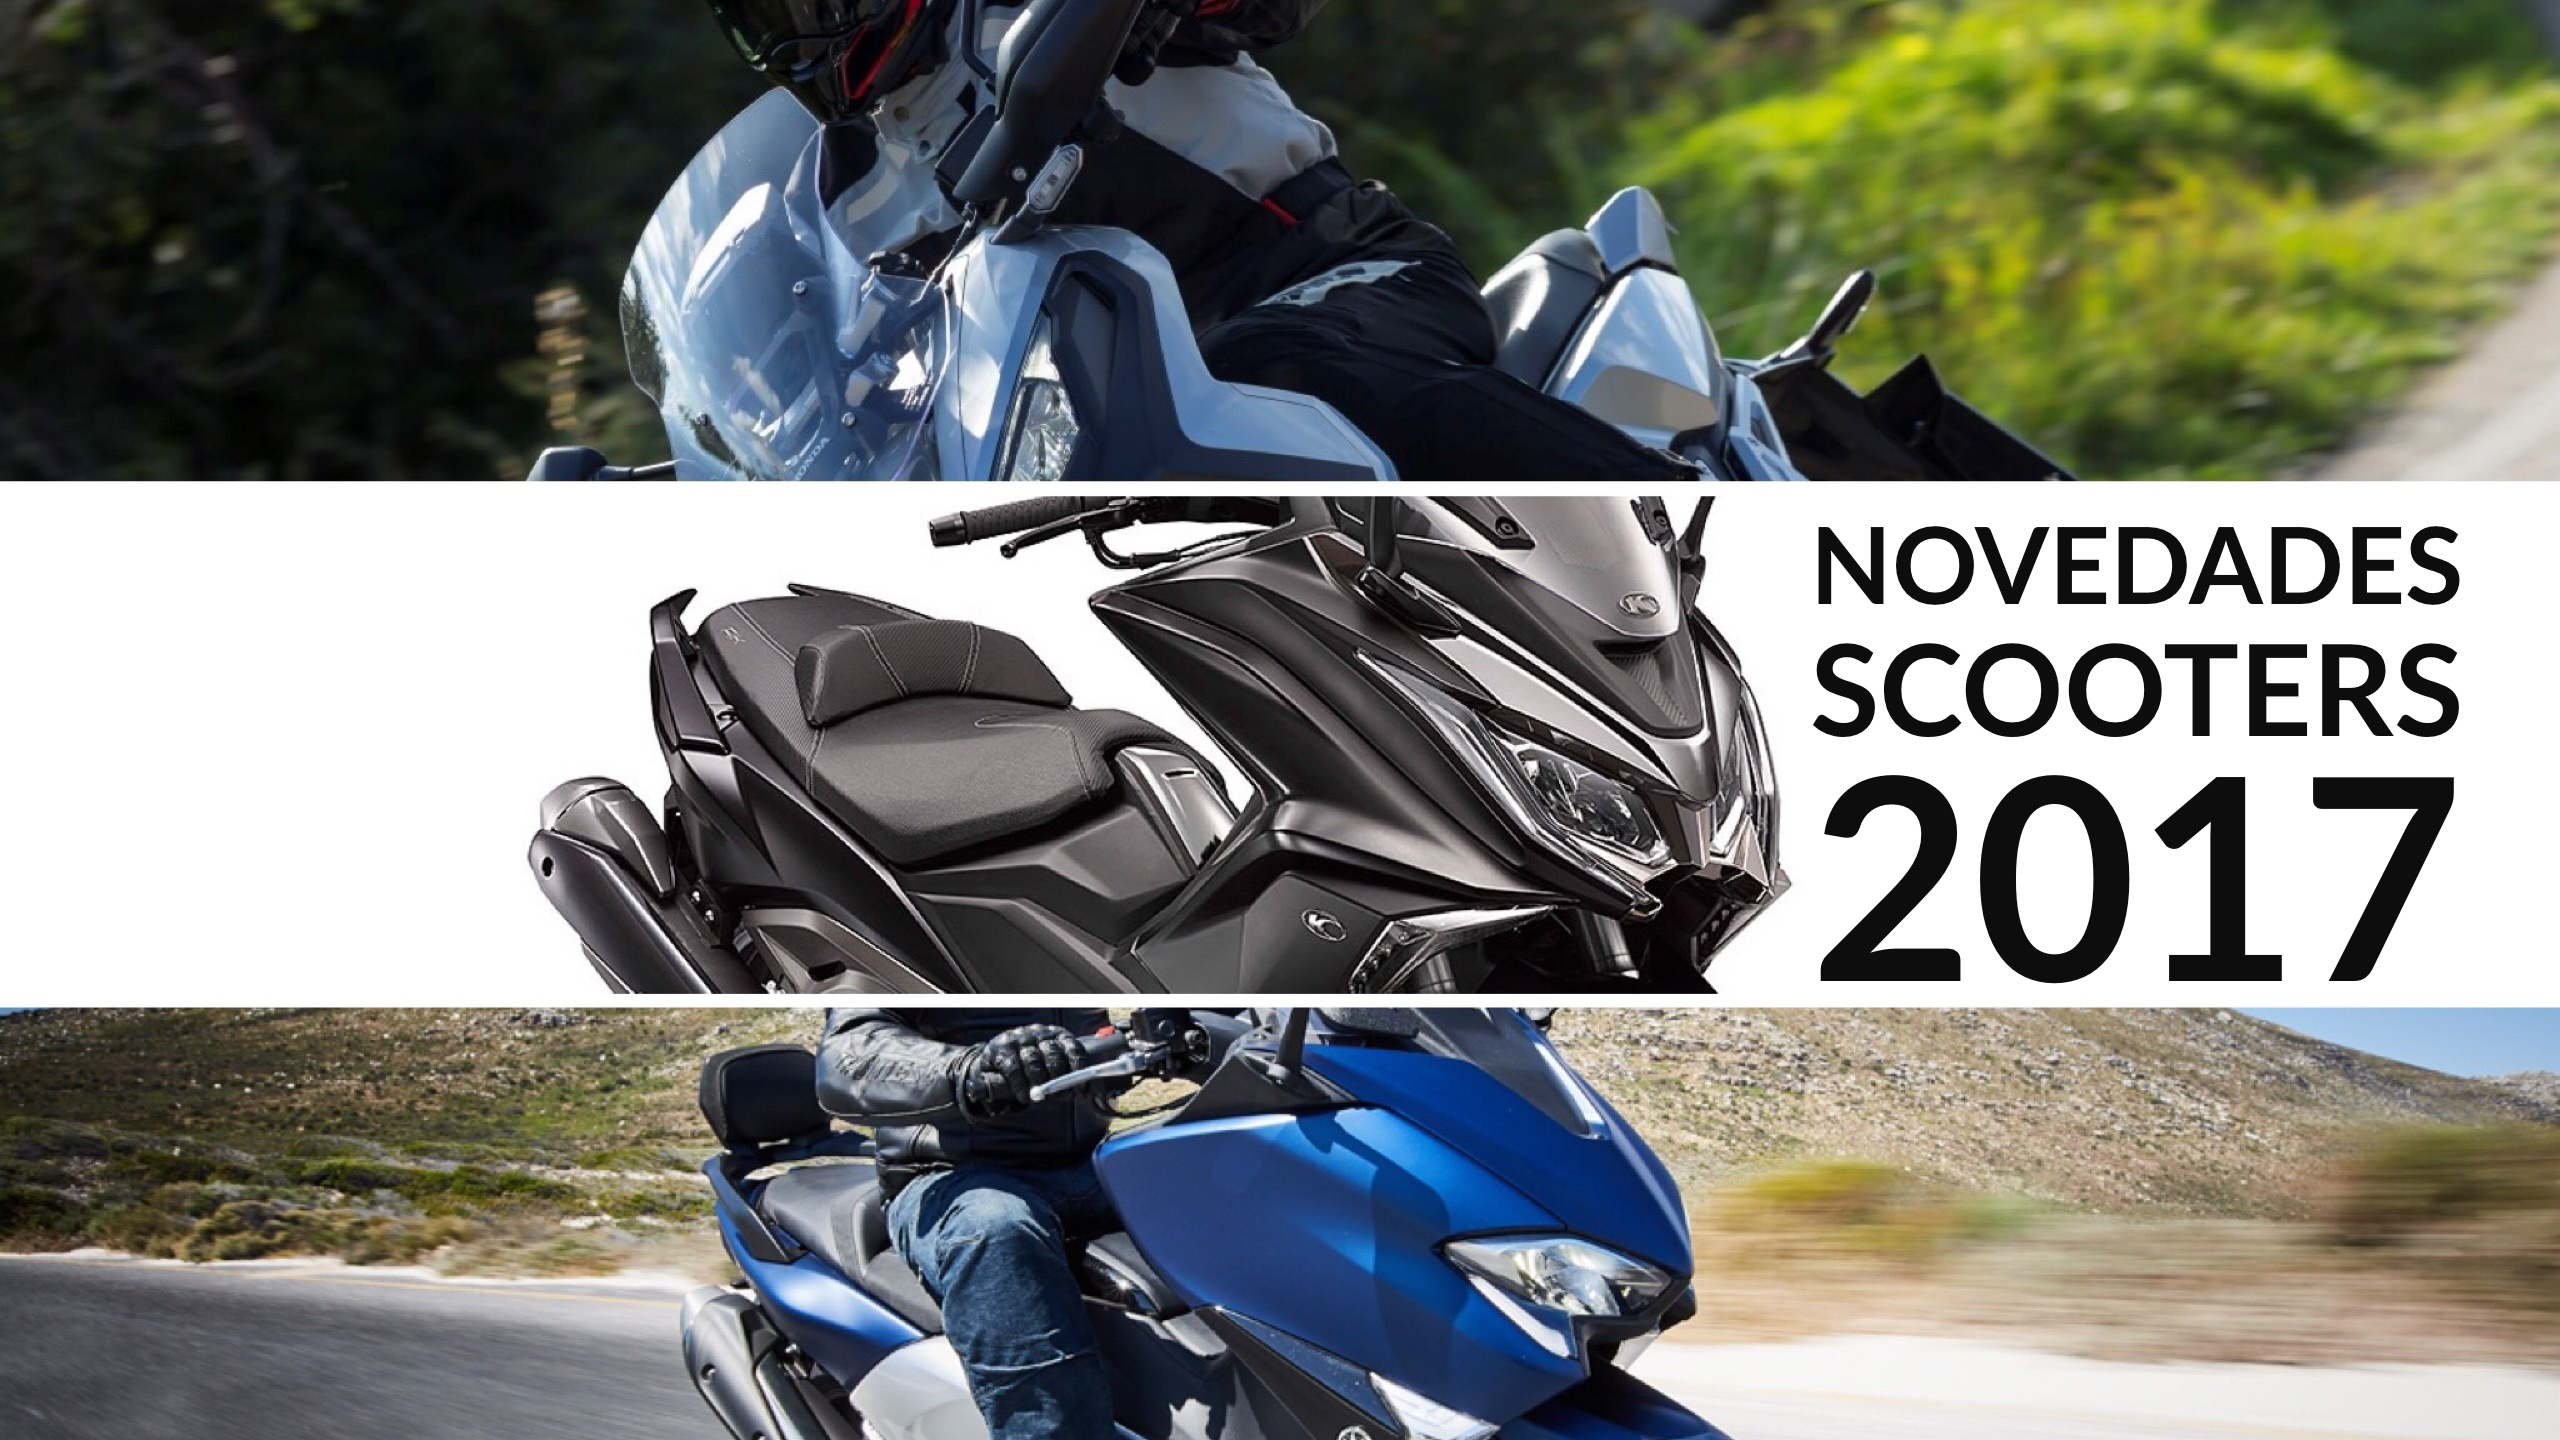 Novedades Scooter y Maxiscooter 2017